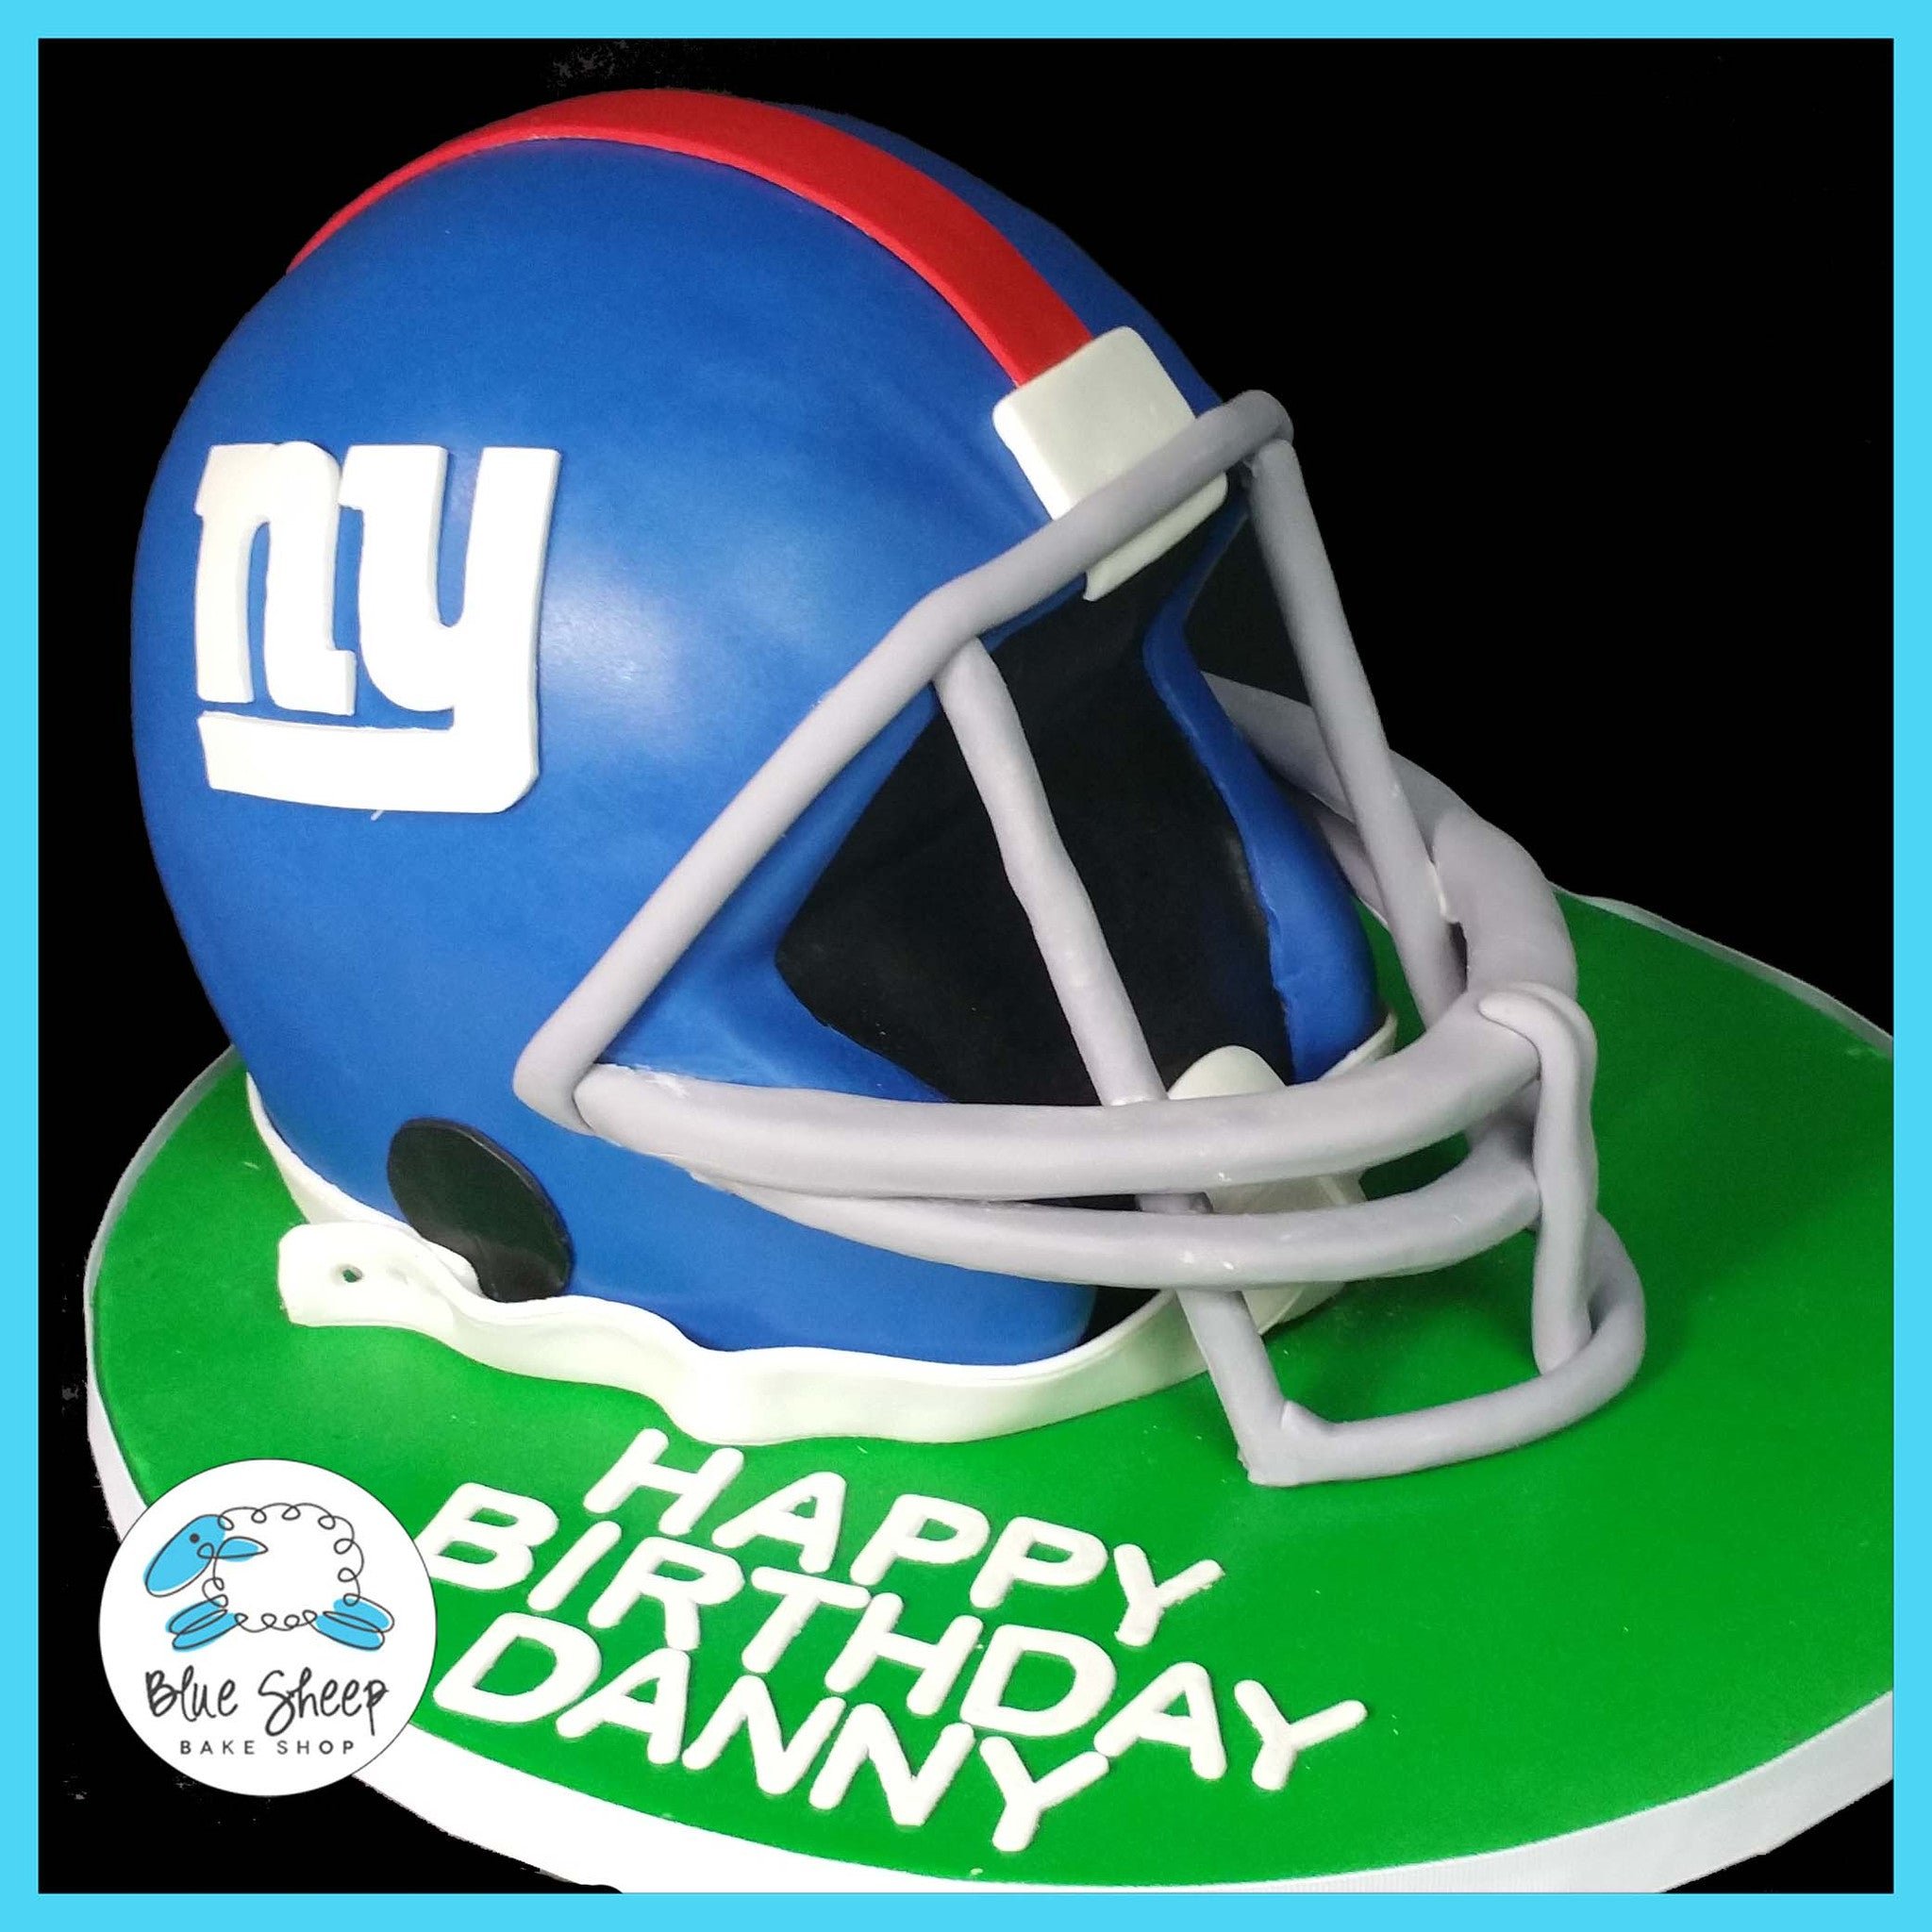 Remarkable Giants Helmet Birthday Cake Blue Sheep Bake Shop Funny Birthday Cards Online Inifodamsfinfo